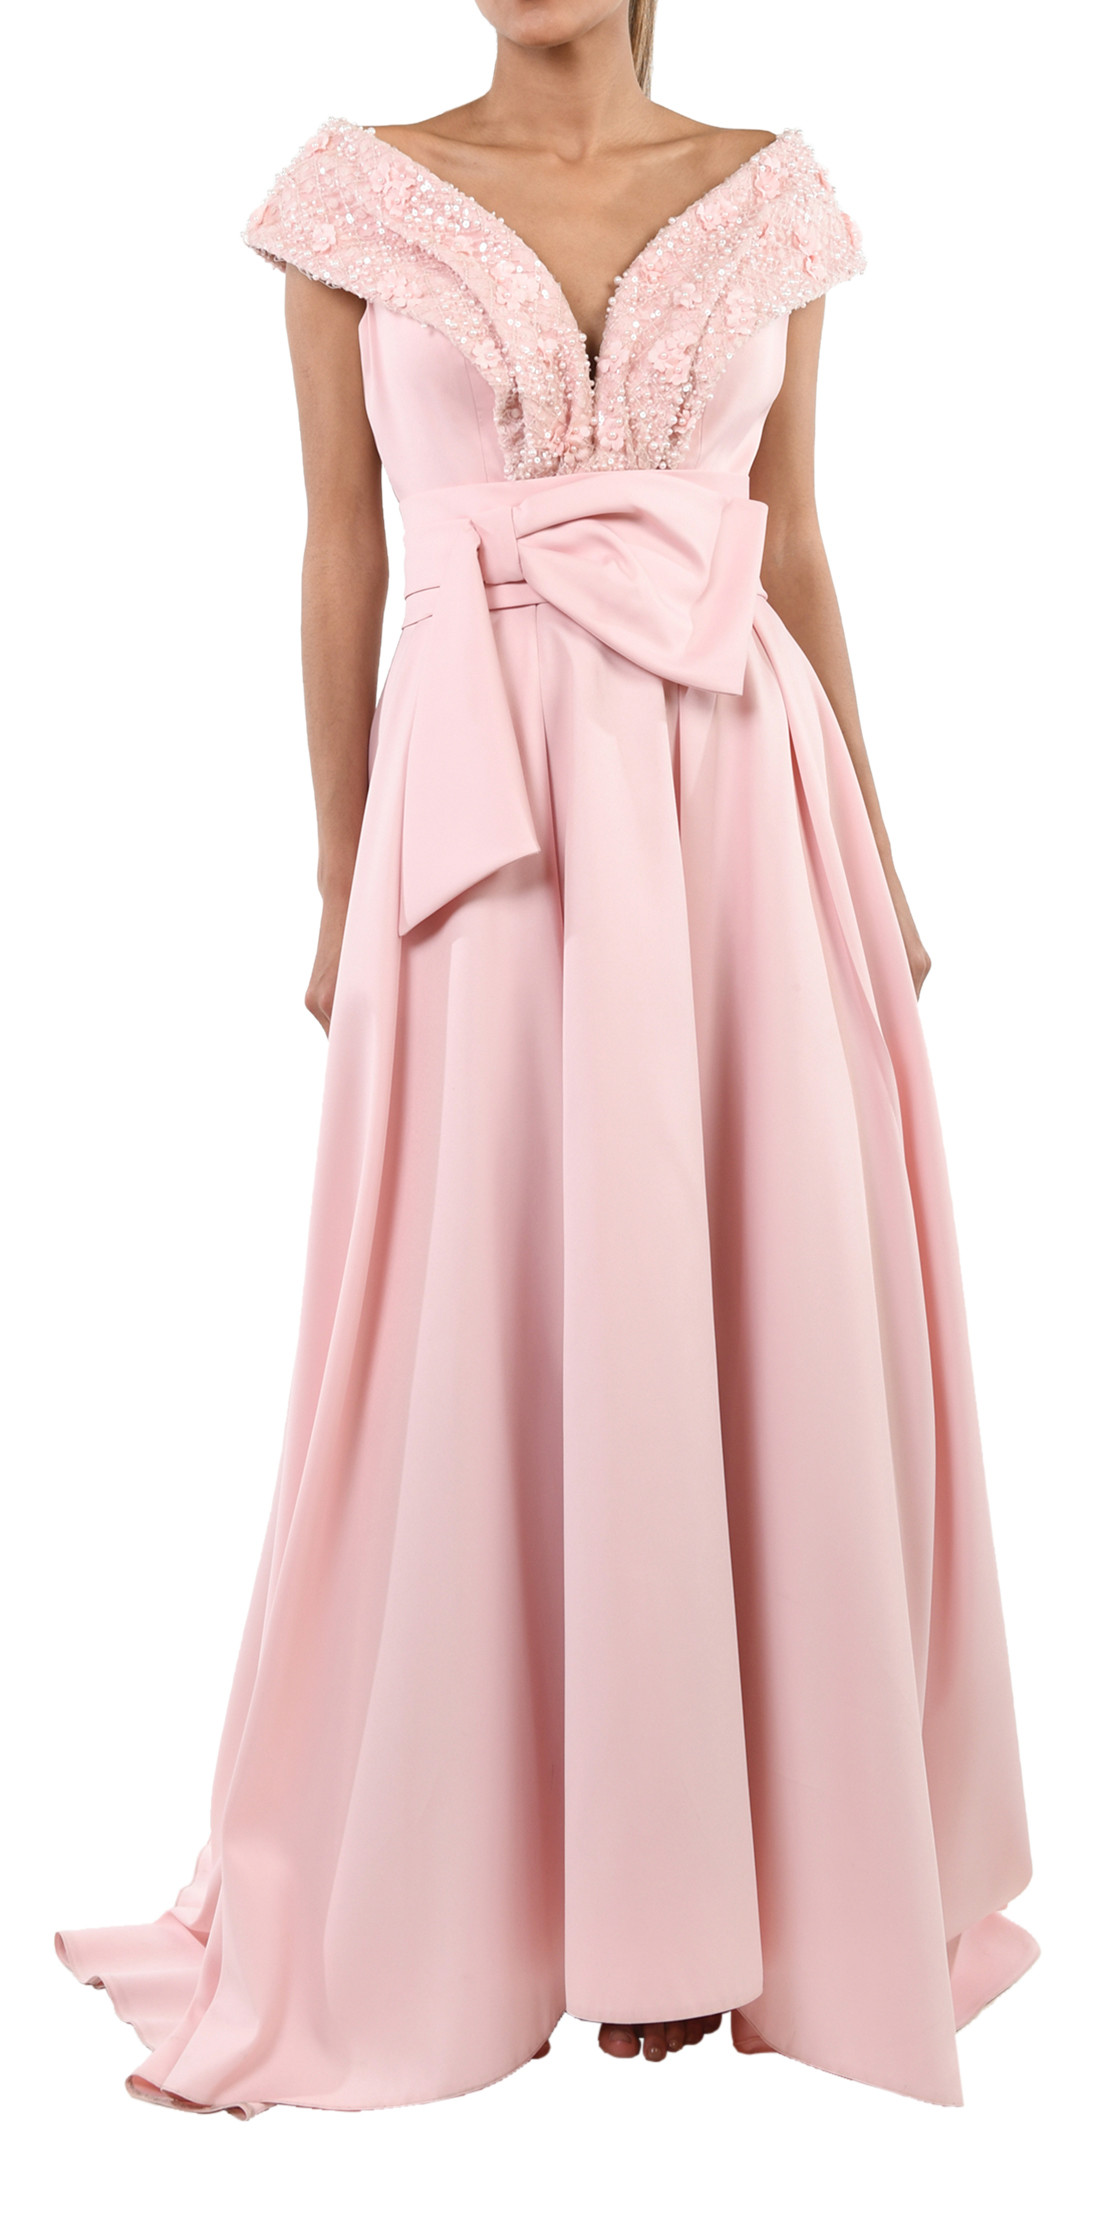 PERFECT Style Off the Shoulder Bow Gown | Designer Dress Rental ...